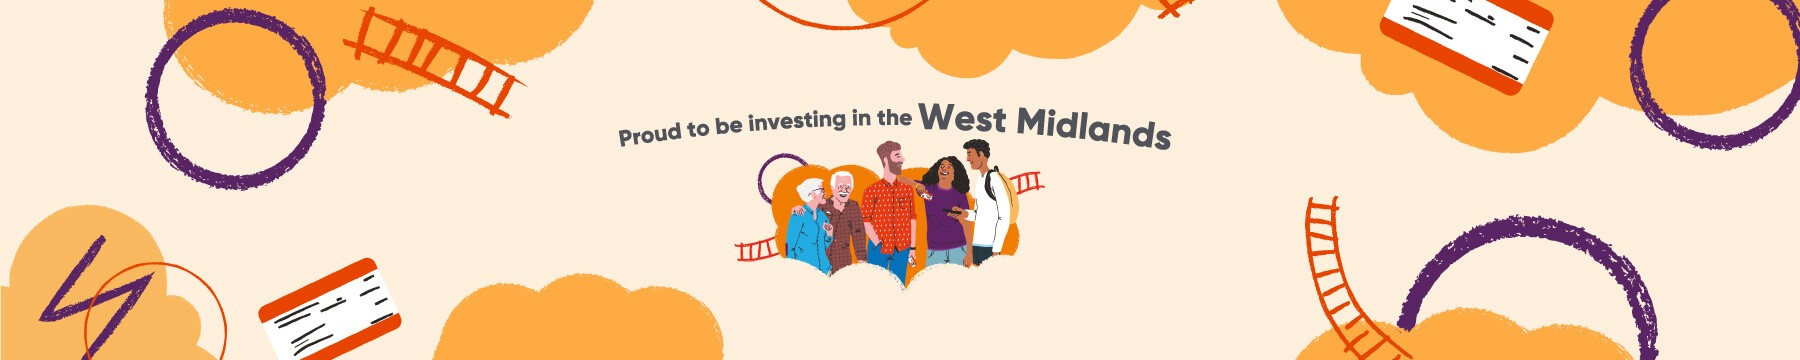 proud to be investing in the west midlands banner